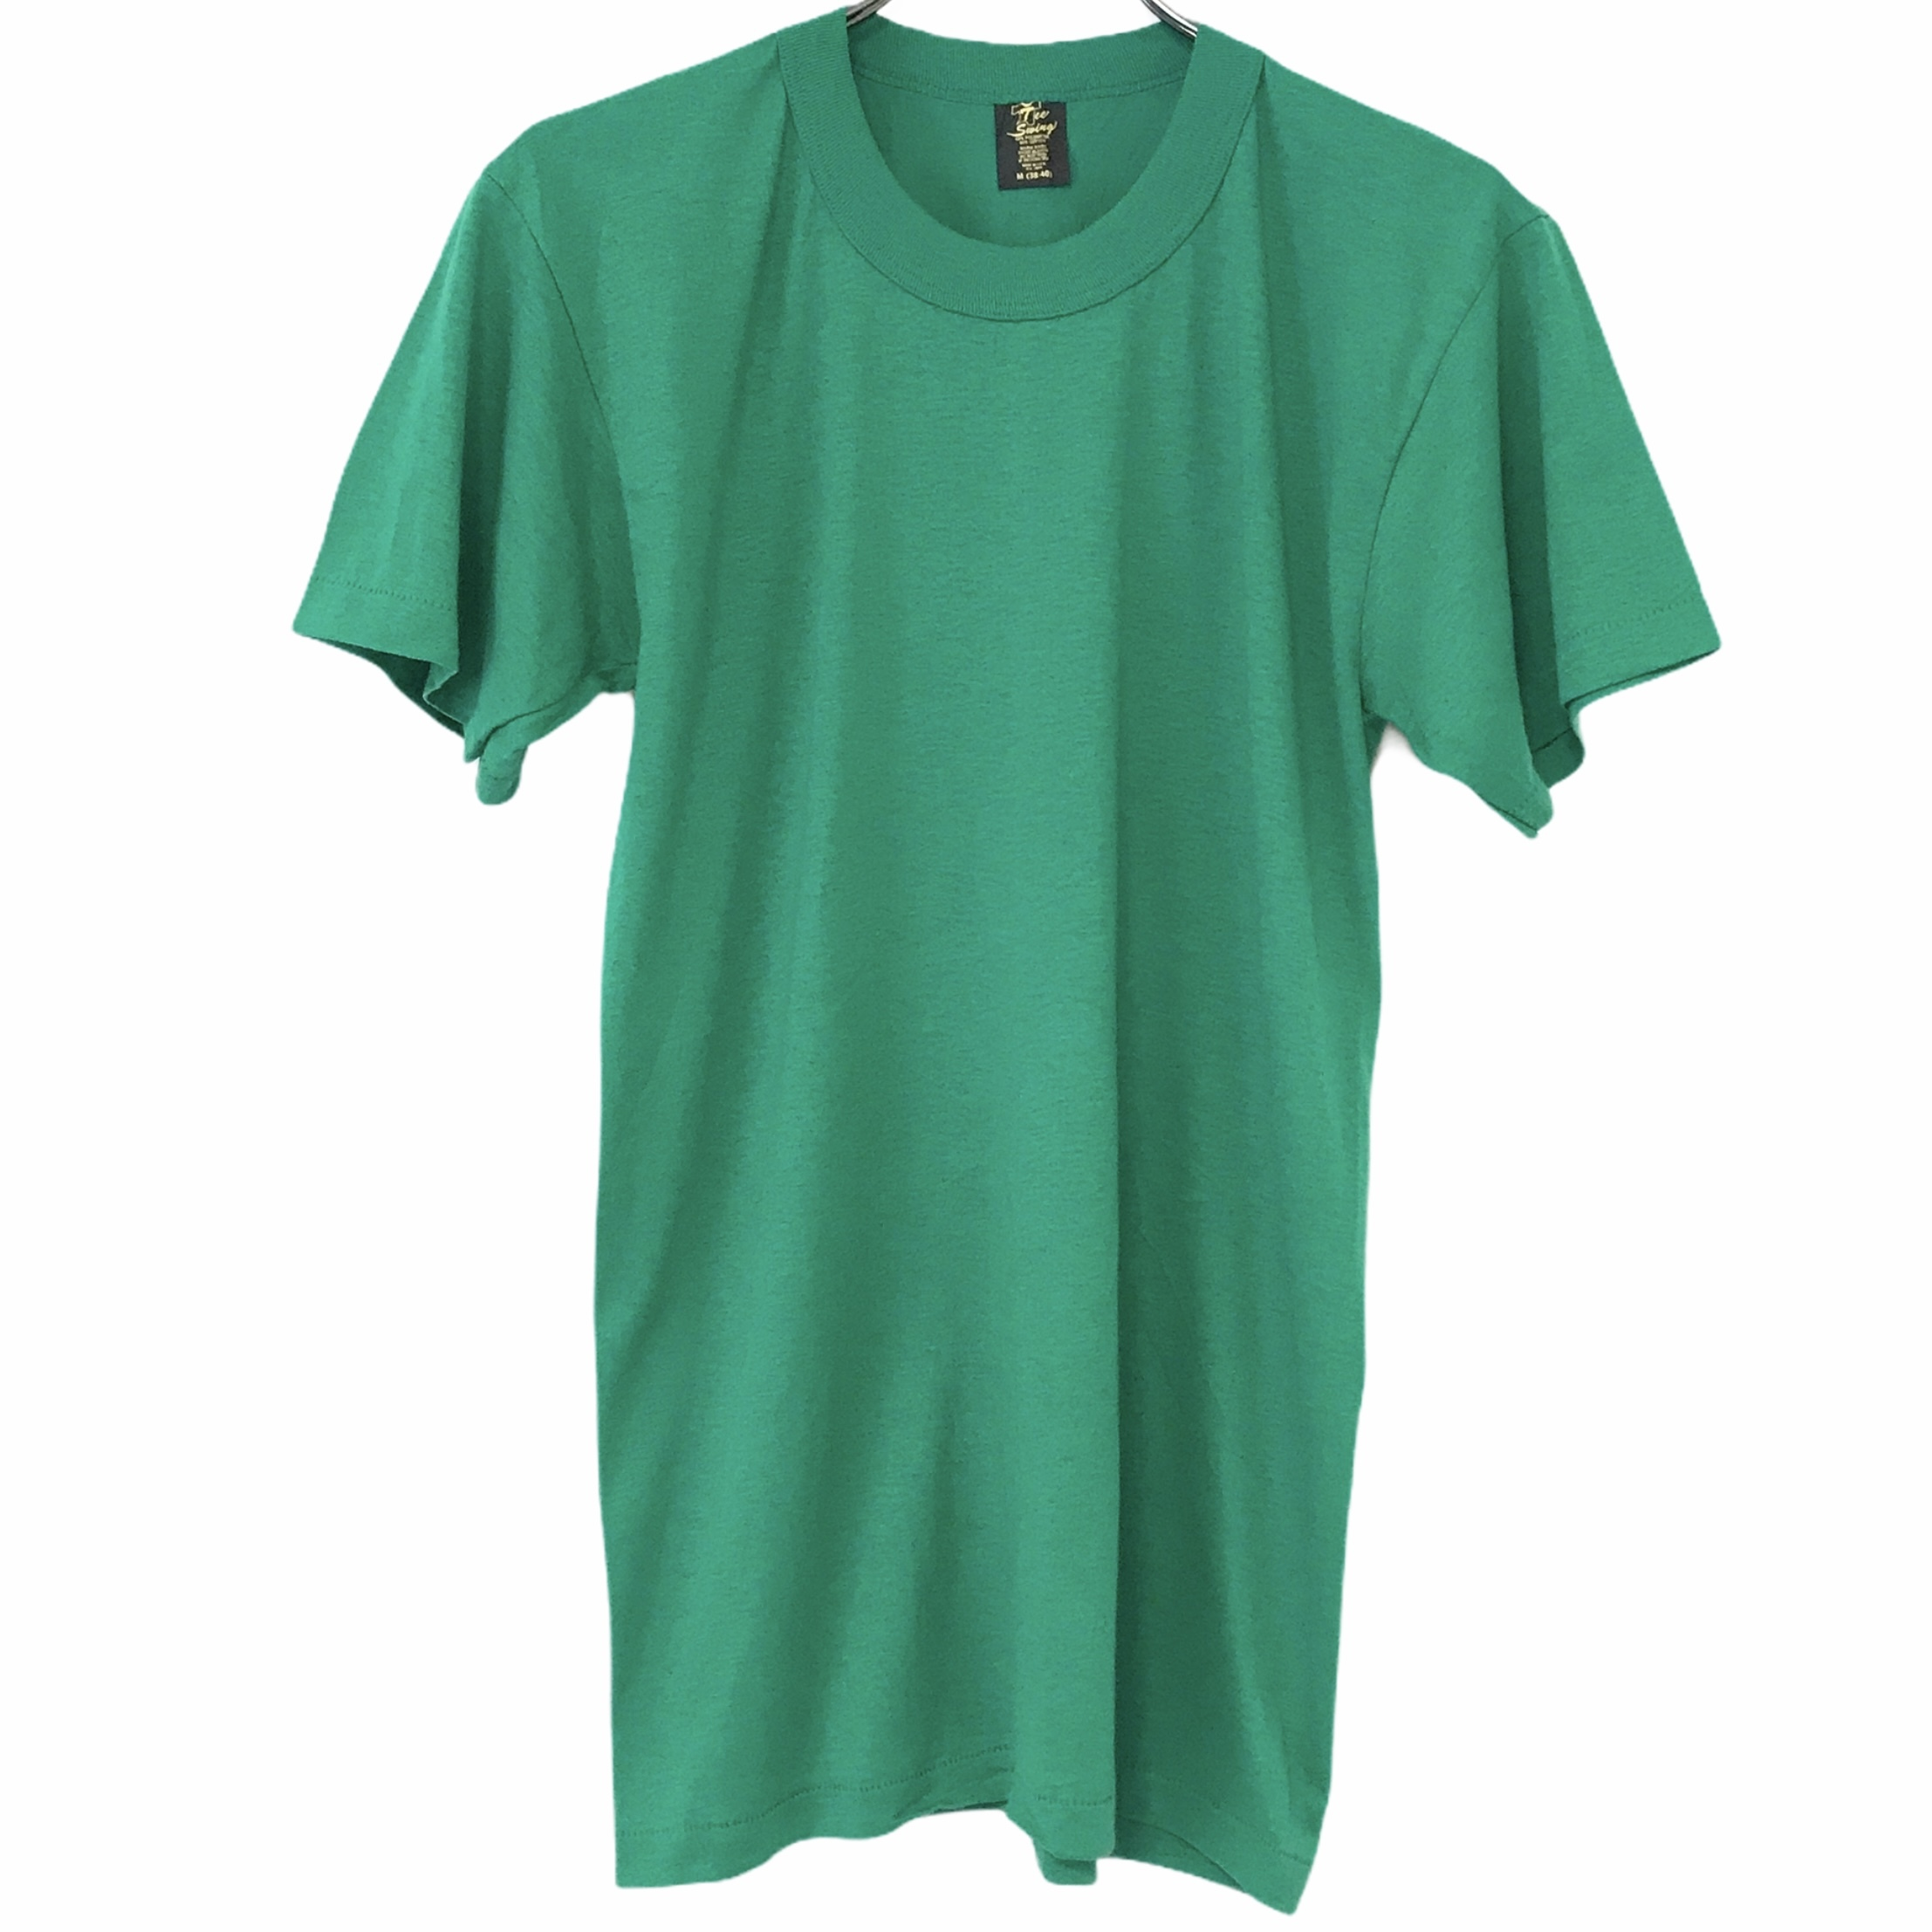 Dead Stock! 80's Tee Swing T-shirt made in USA Green